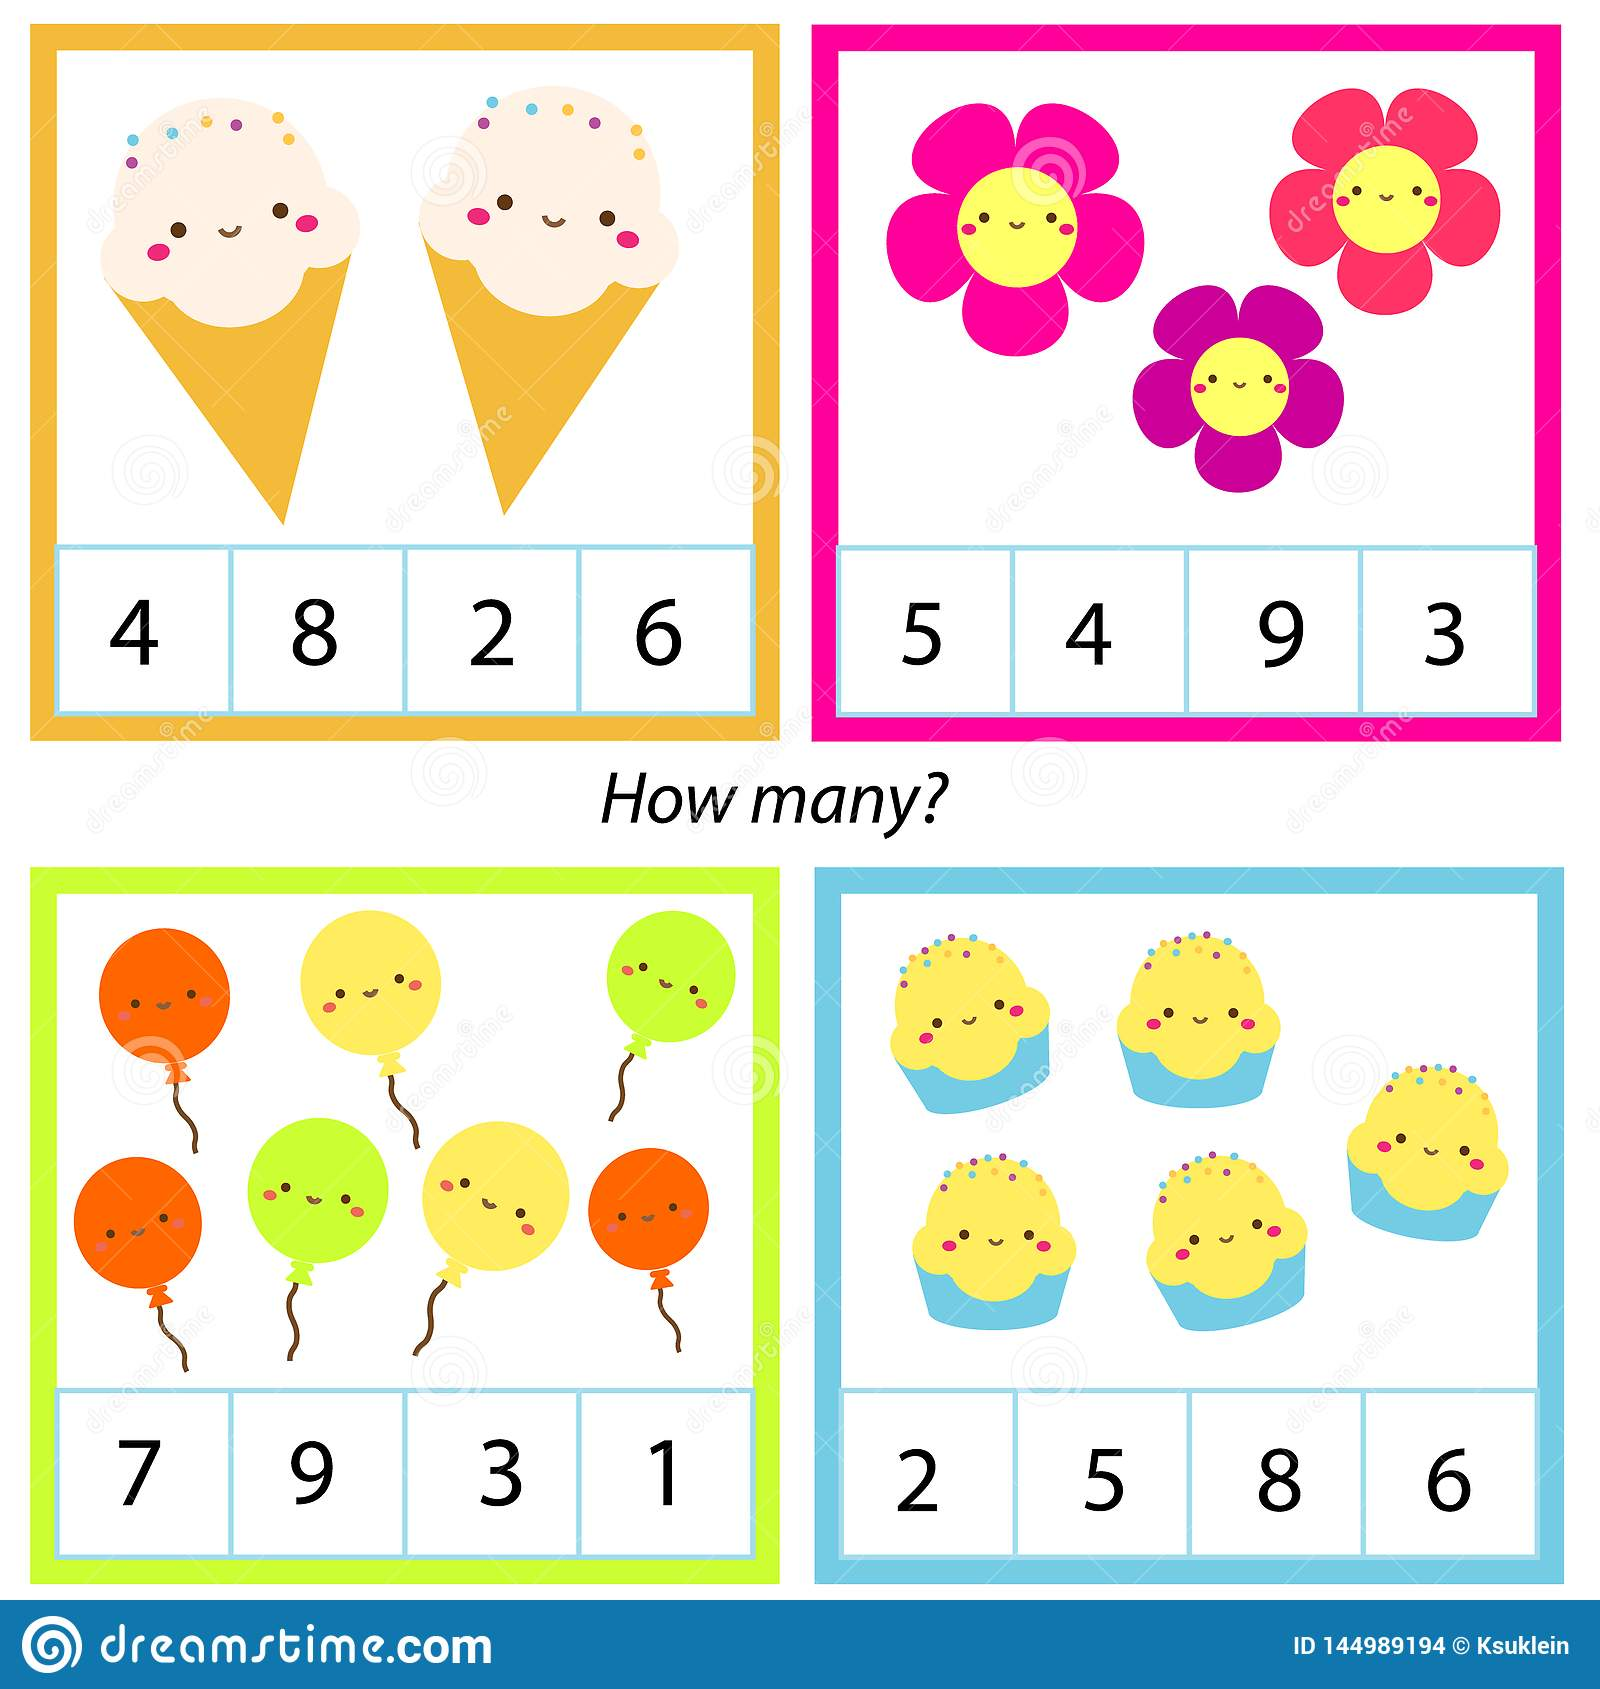 Counting Educational Children Game Mathematics Activity